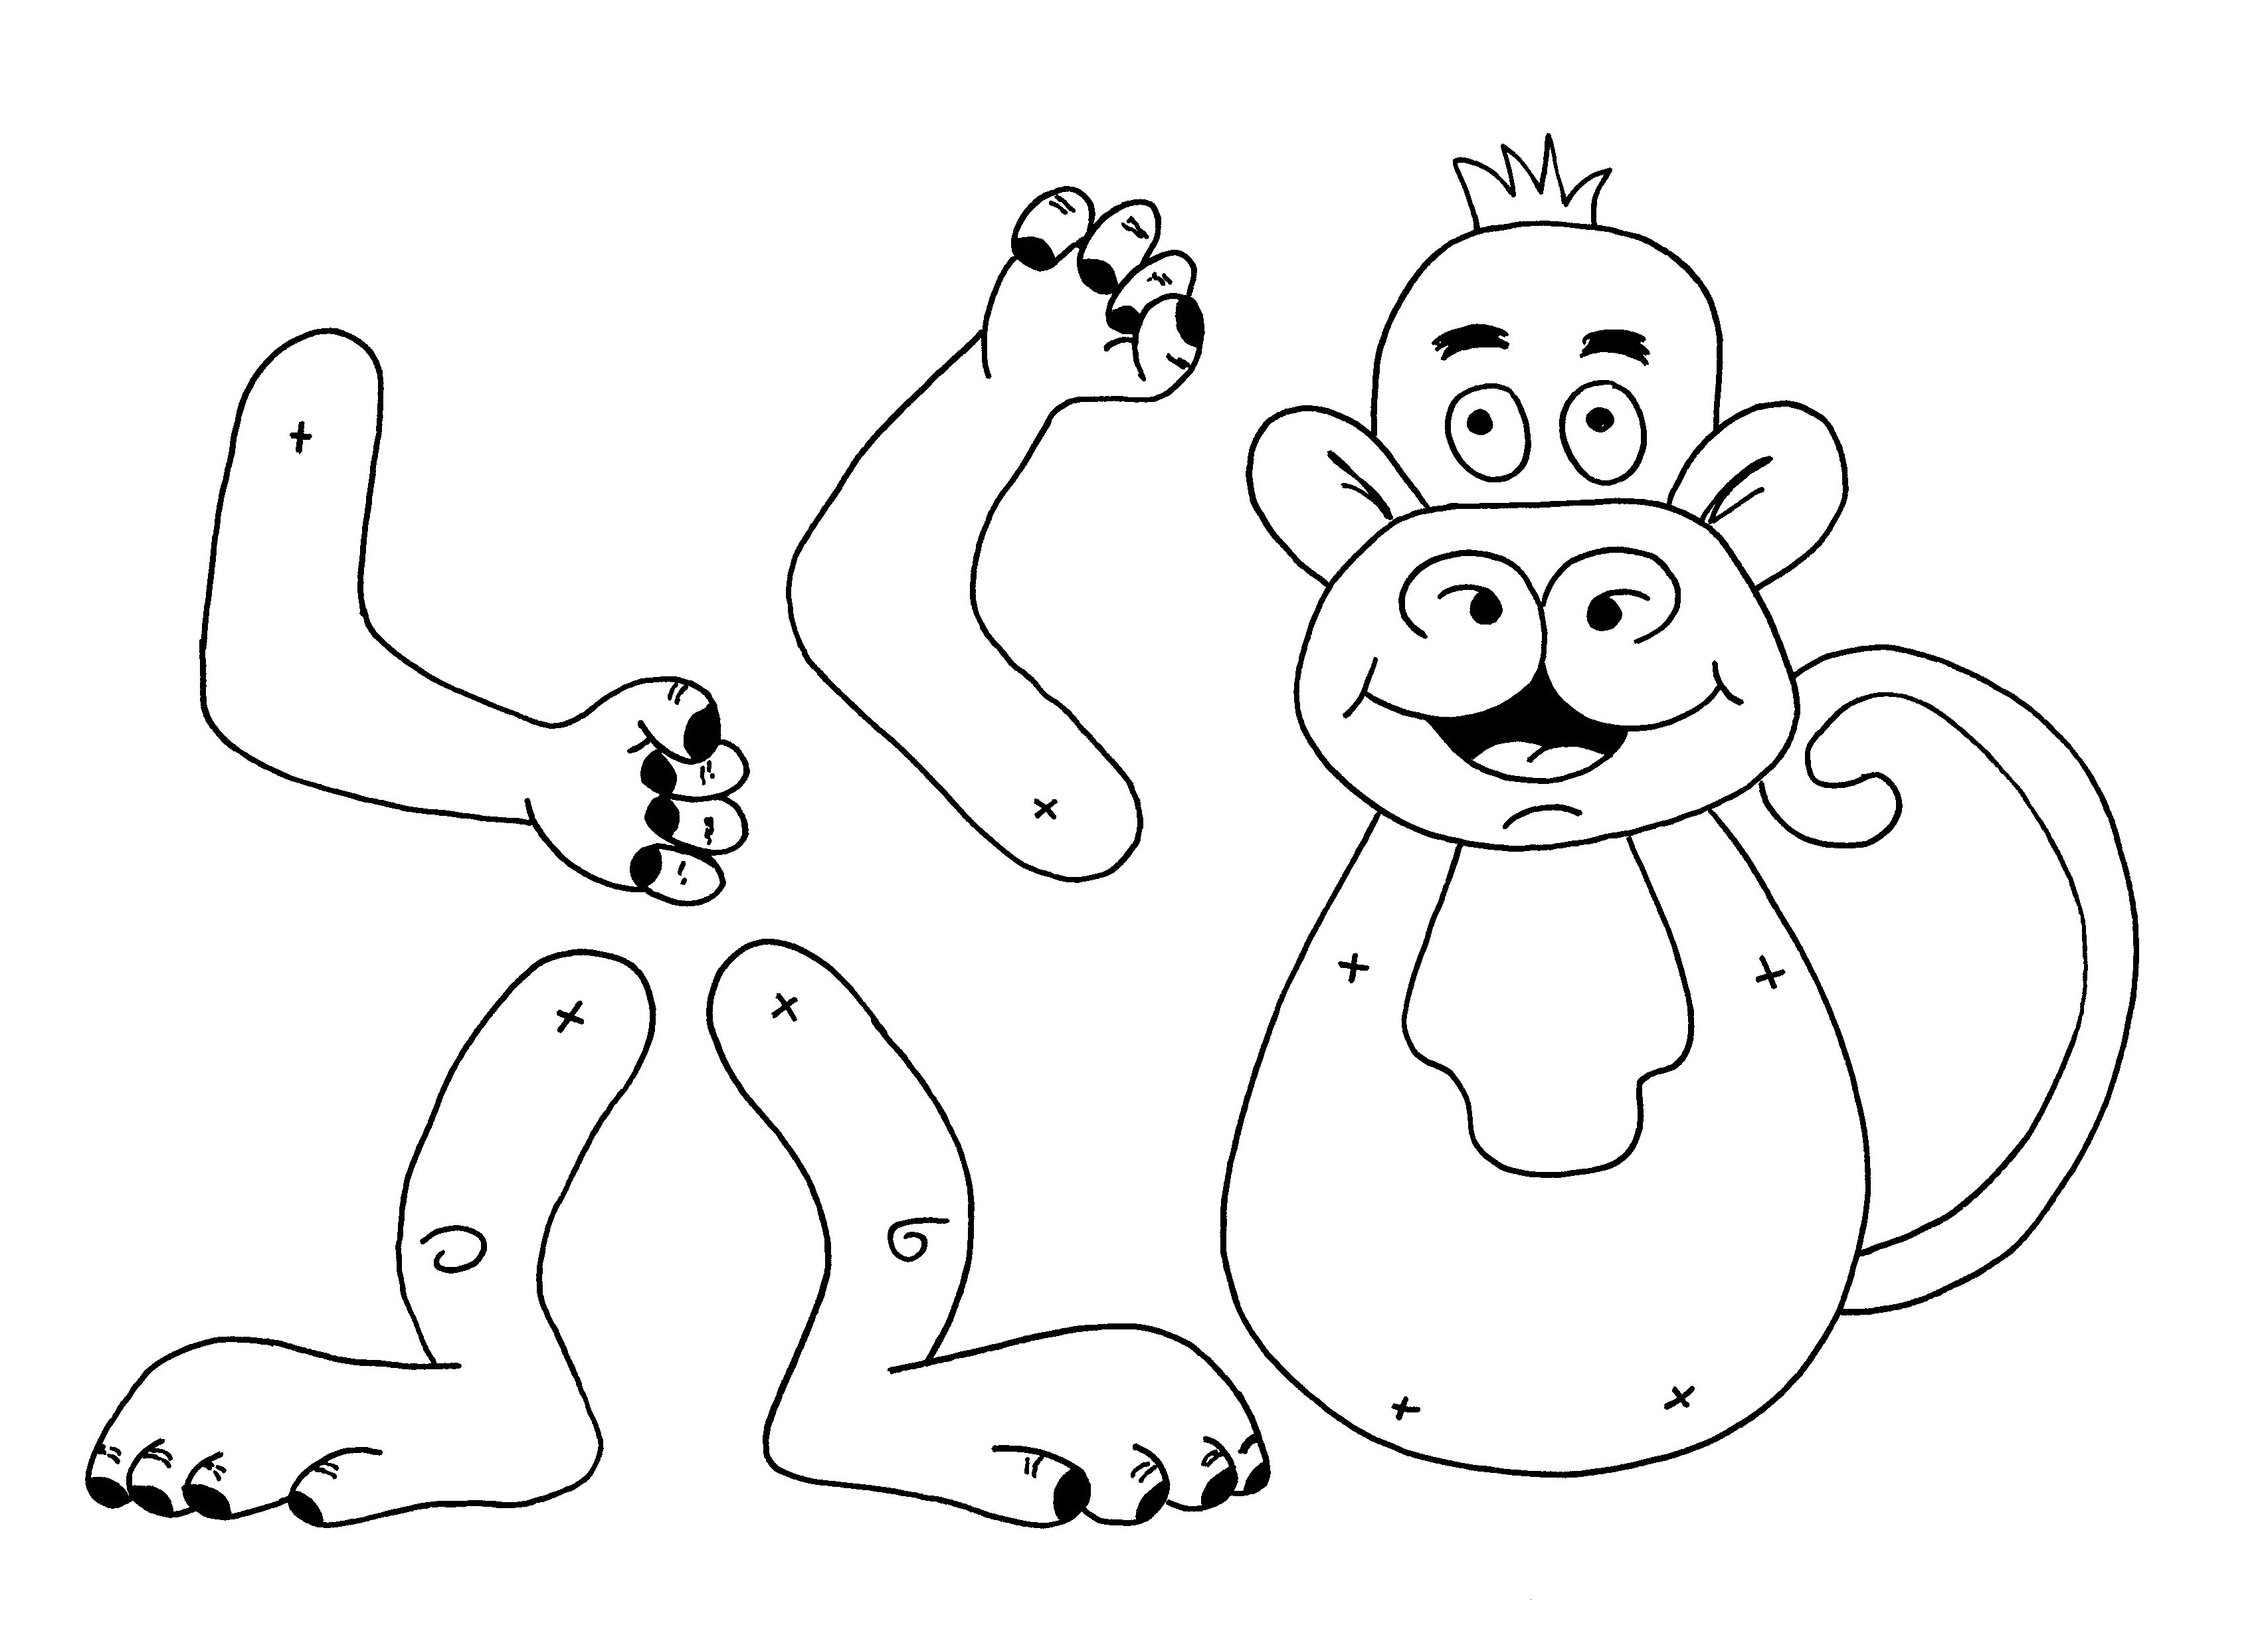 Monkey Finger Puppet Coloring Activity Coloring Pages